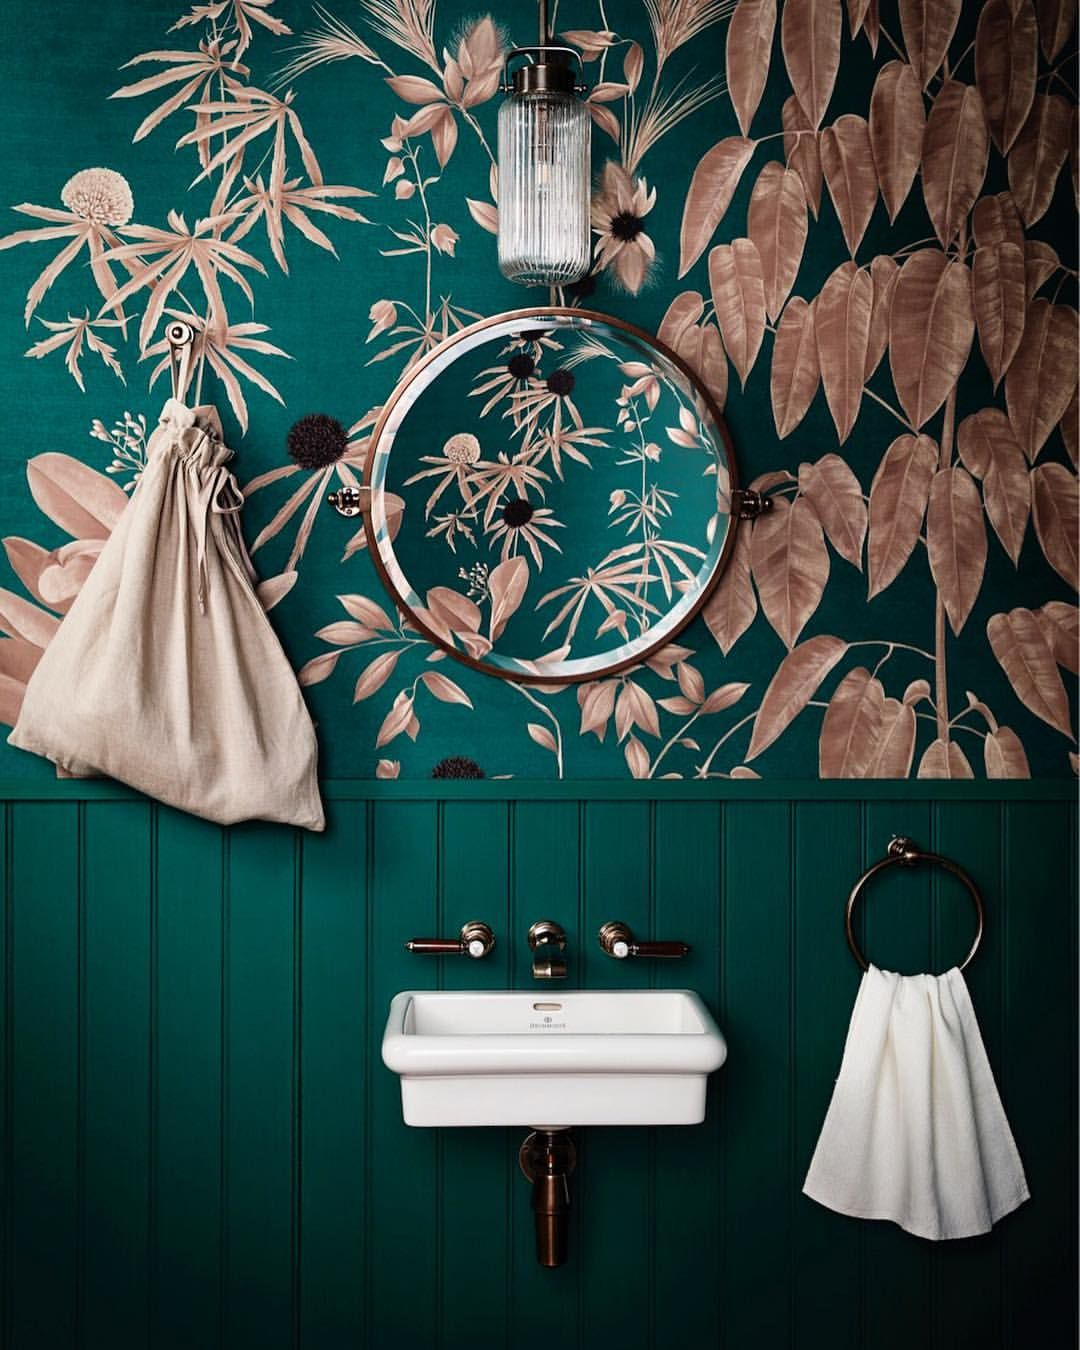 With A Lick Of Calypso Green Paint From Benjaminmoore S Mildew Resistant Aura Bath Spa Range The Pa Green Color Trends Blush Pink Wallpaper Green Bathroom